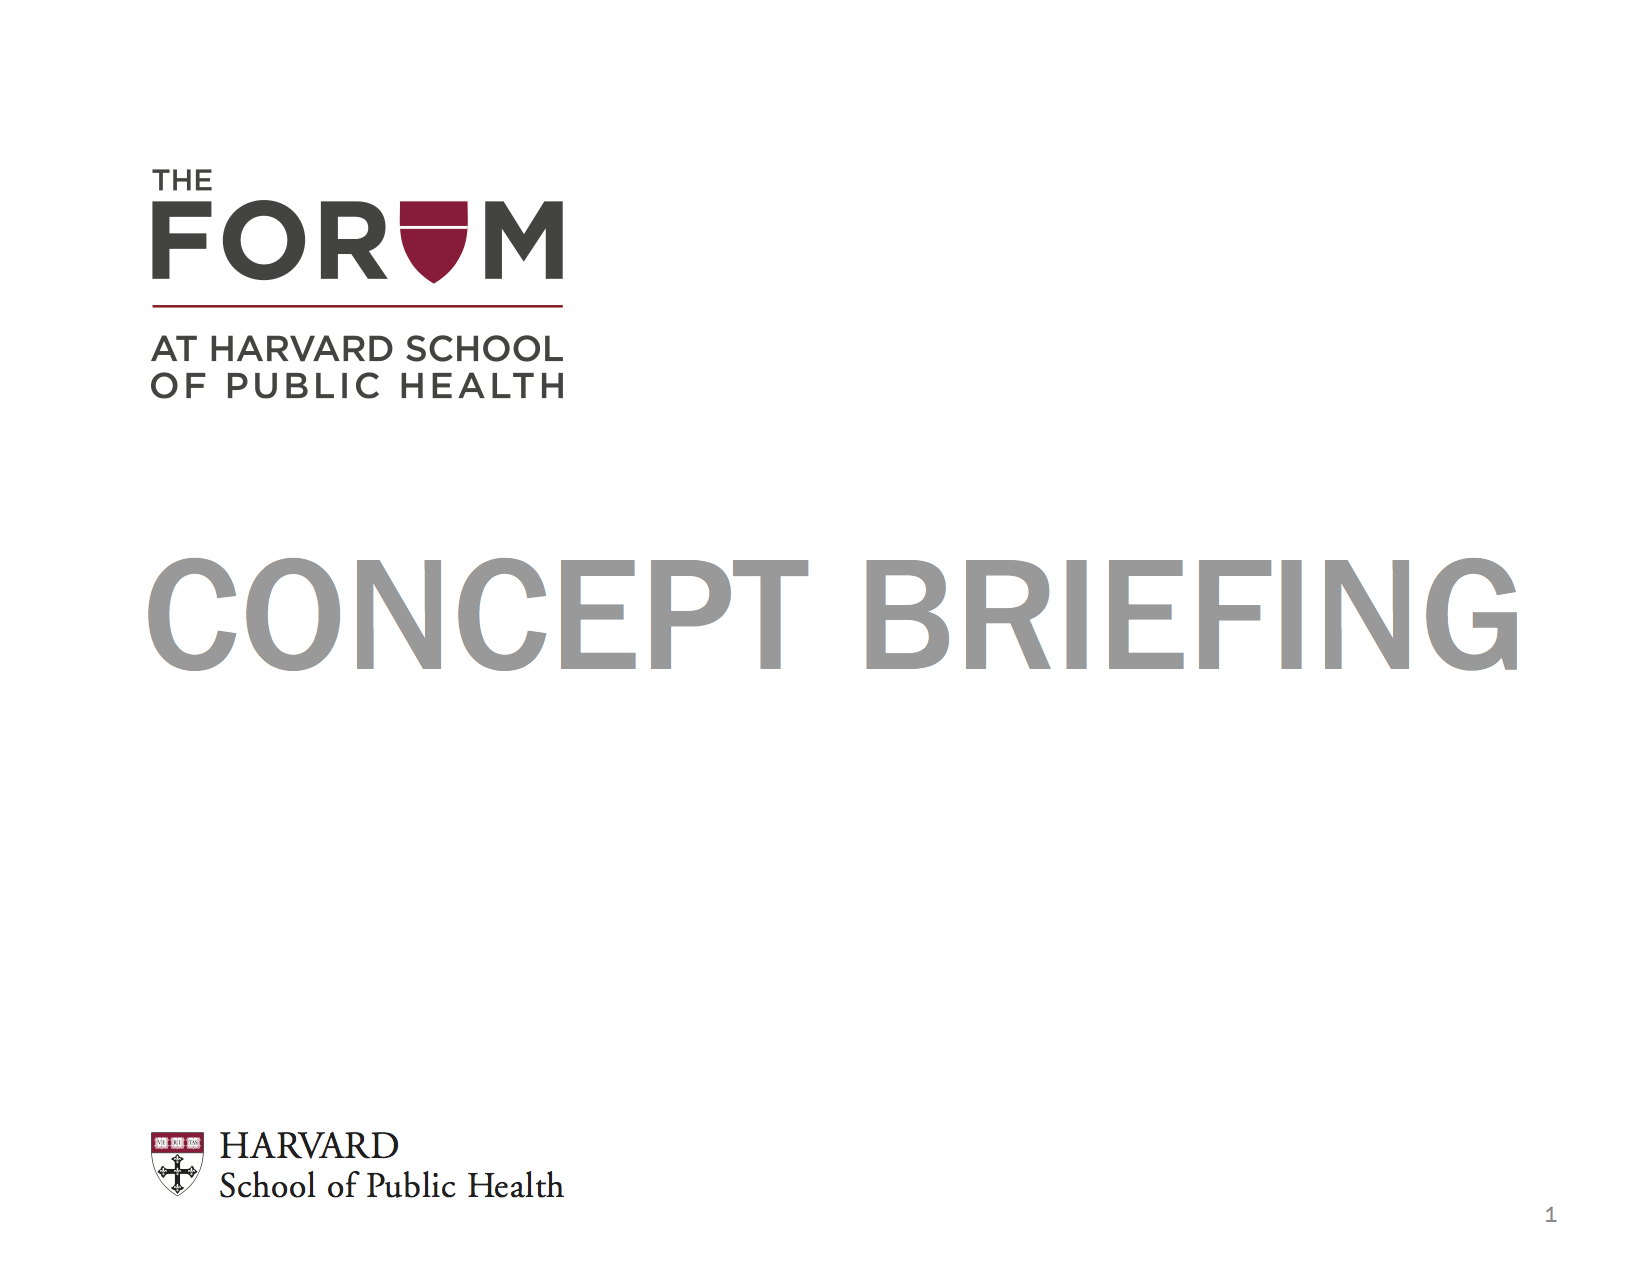 CONCEPT_BRIEFING_9_28_Press (dragged).jpg